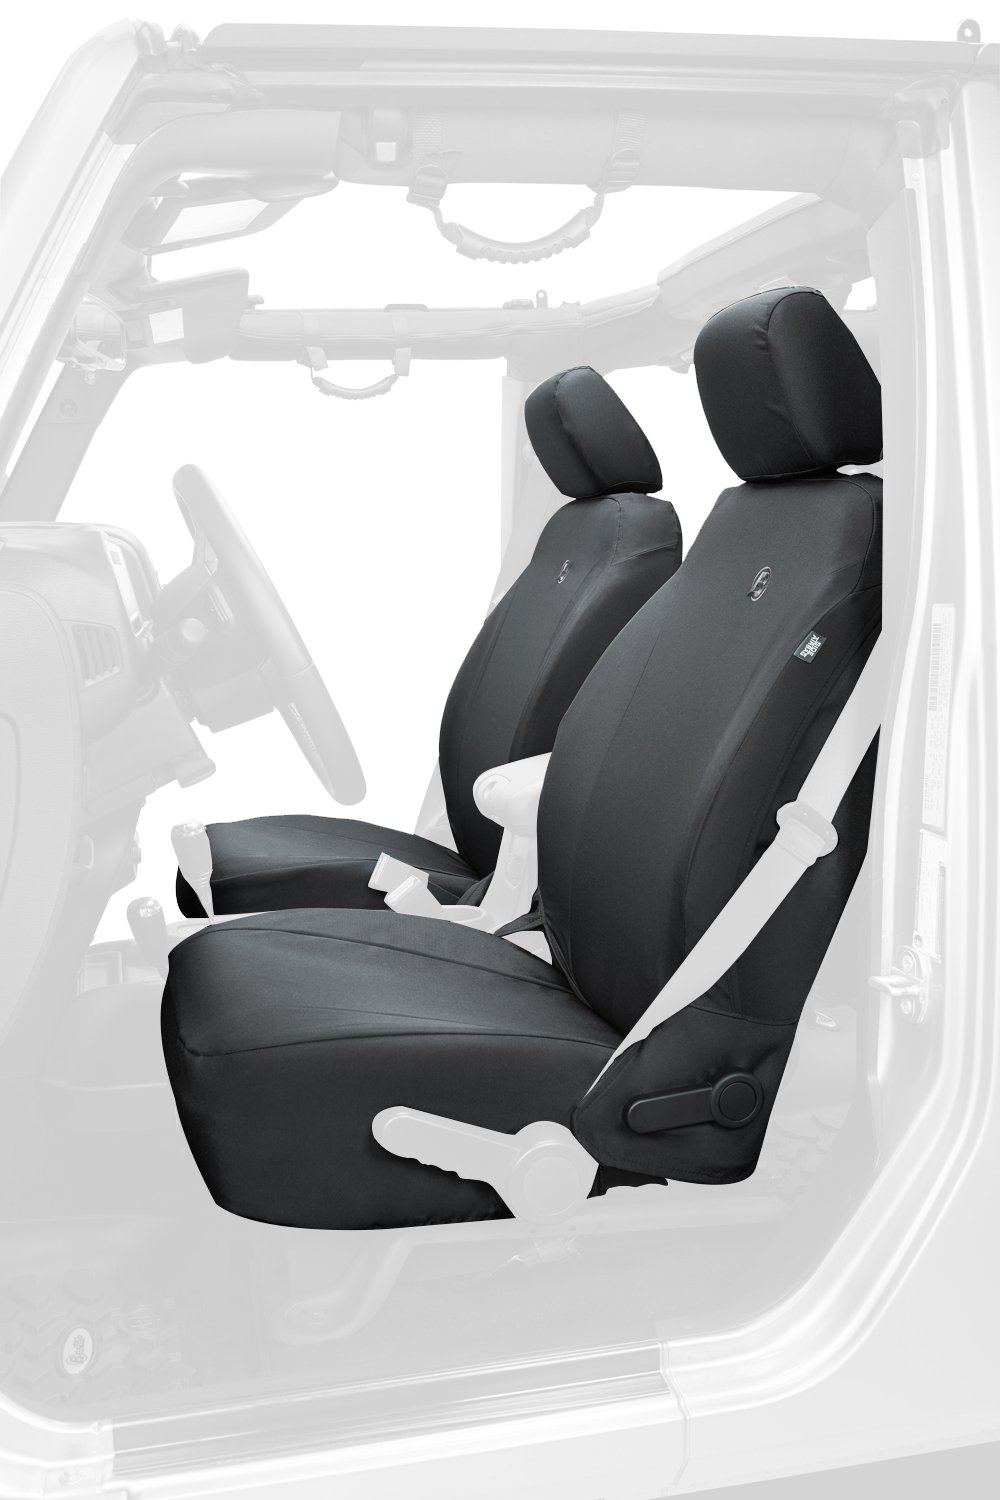 Bestop 29283-35 Black Diamond Front Seat Cover for 2013-2018 Jeep Wrangler 2DR and Unlimited